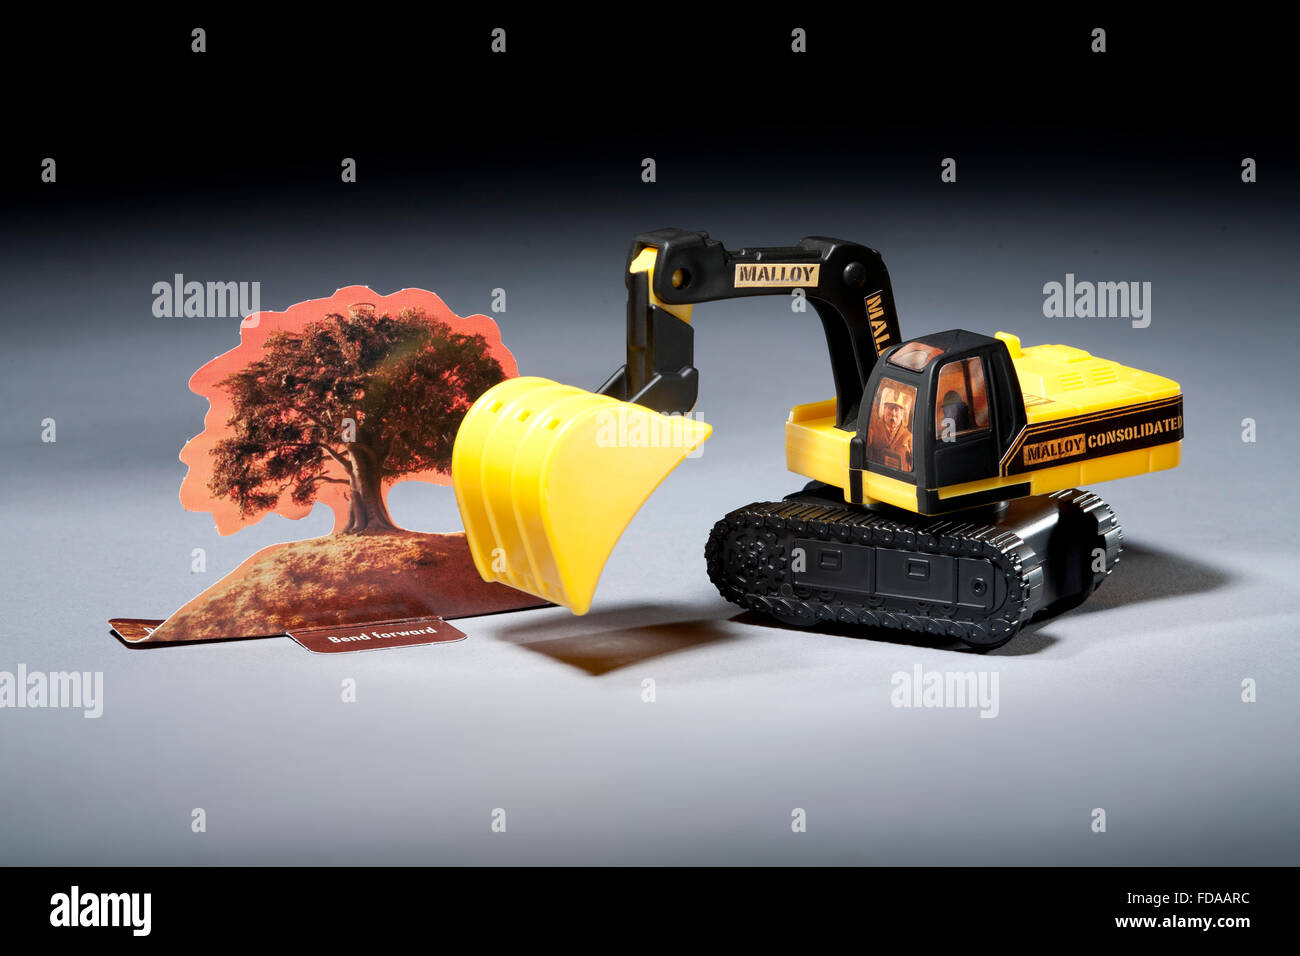 Construction toy next to a cardboard tree - Stock Image